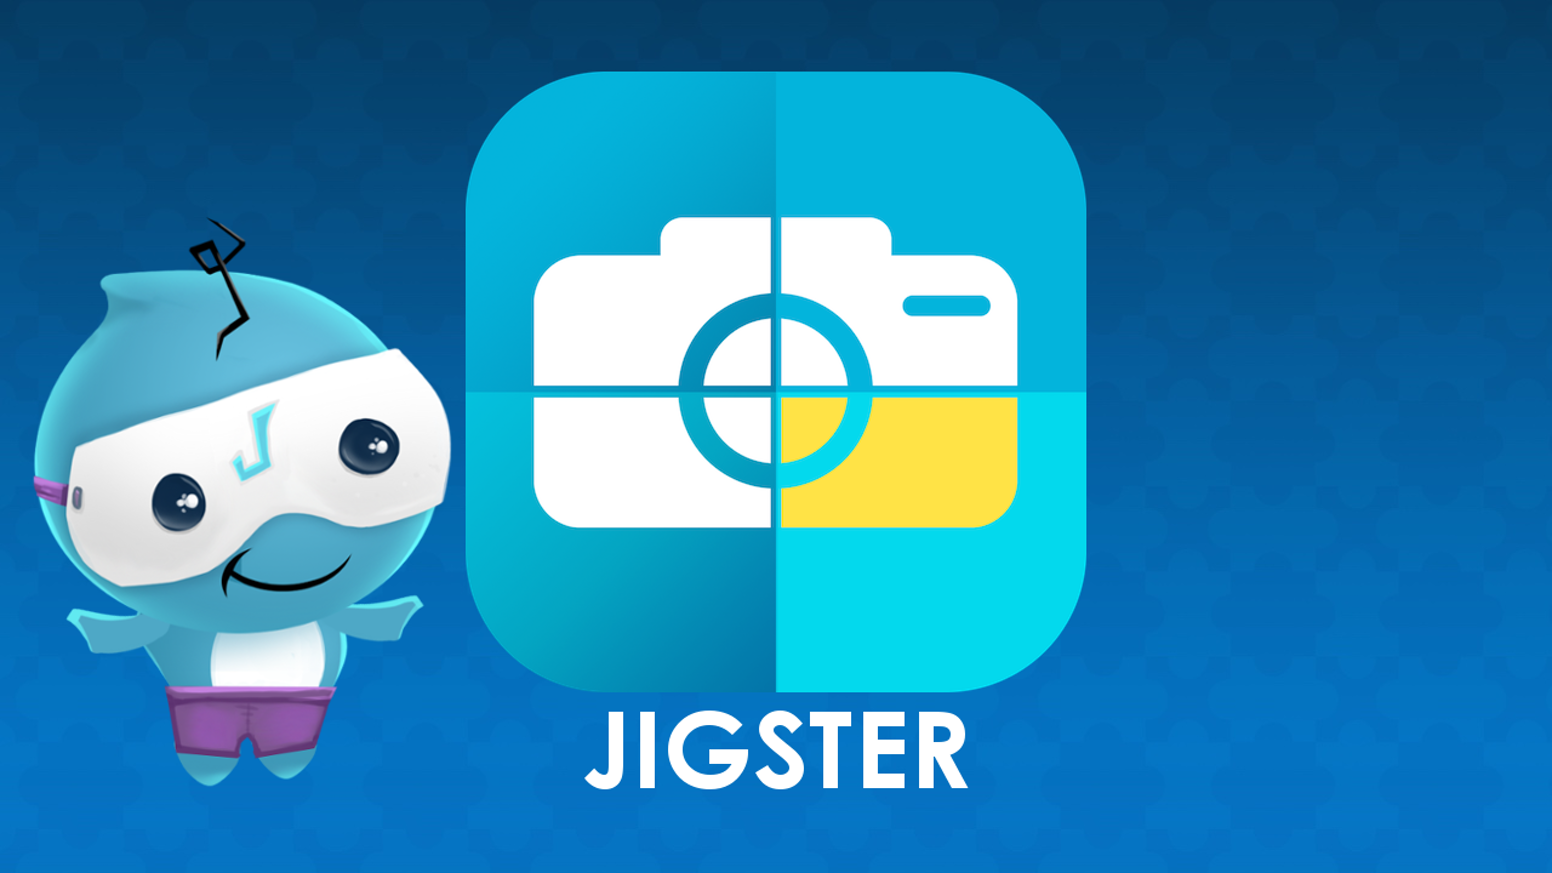 We want to bring Jigster to Desktop and with it a great collection of music that fits some amazing puzzling fun!